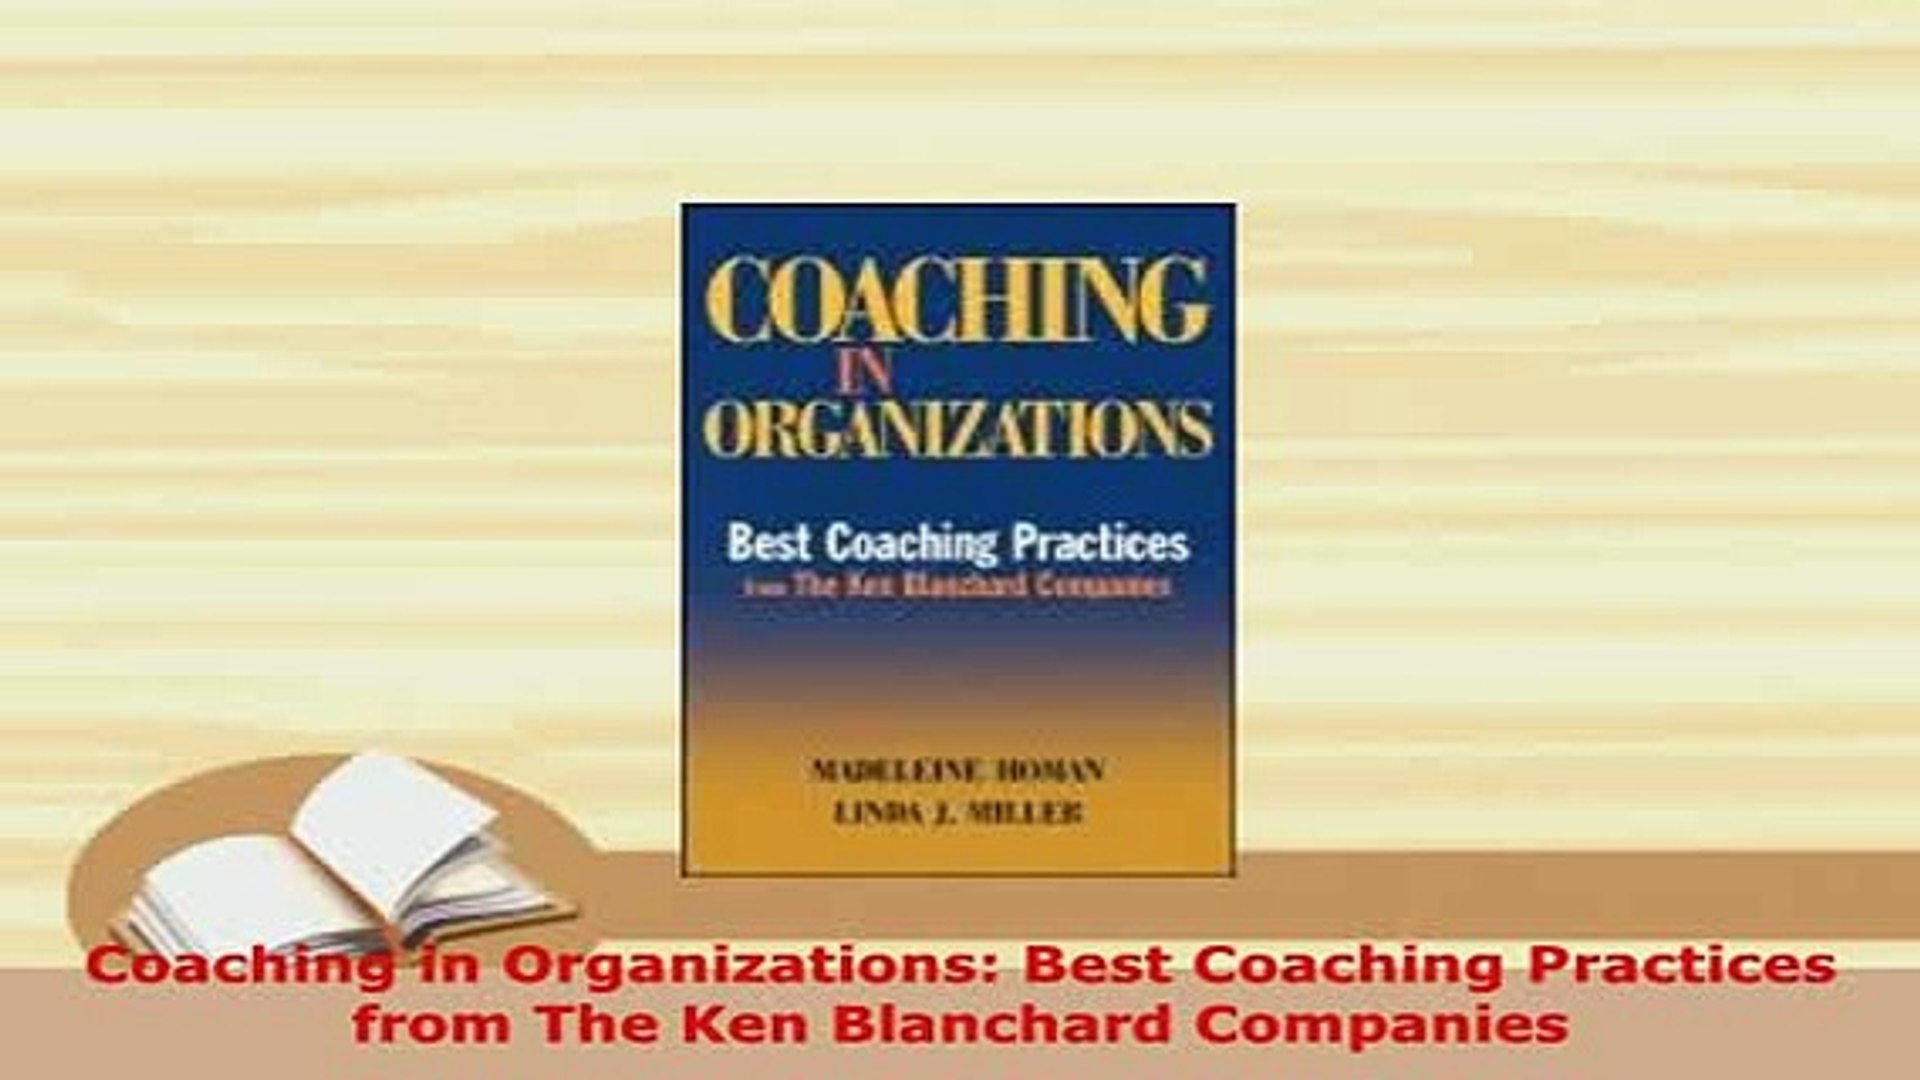 Coaching in organizations : best coaching practices from the Ken Blanchard Companies